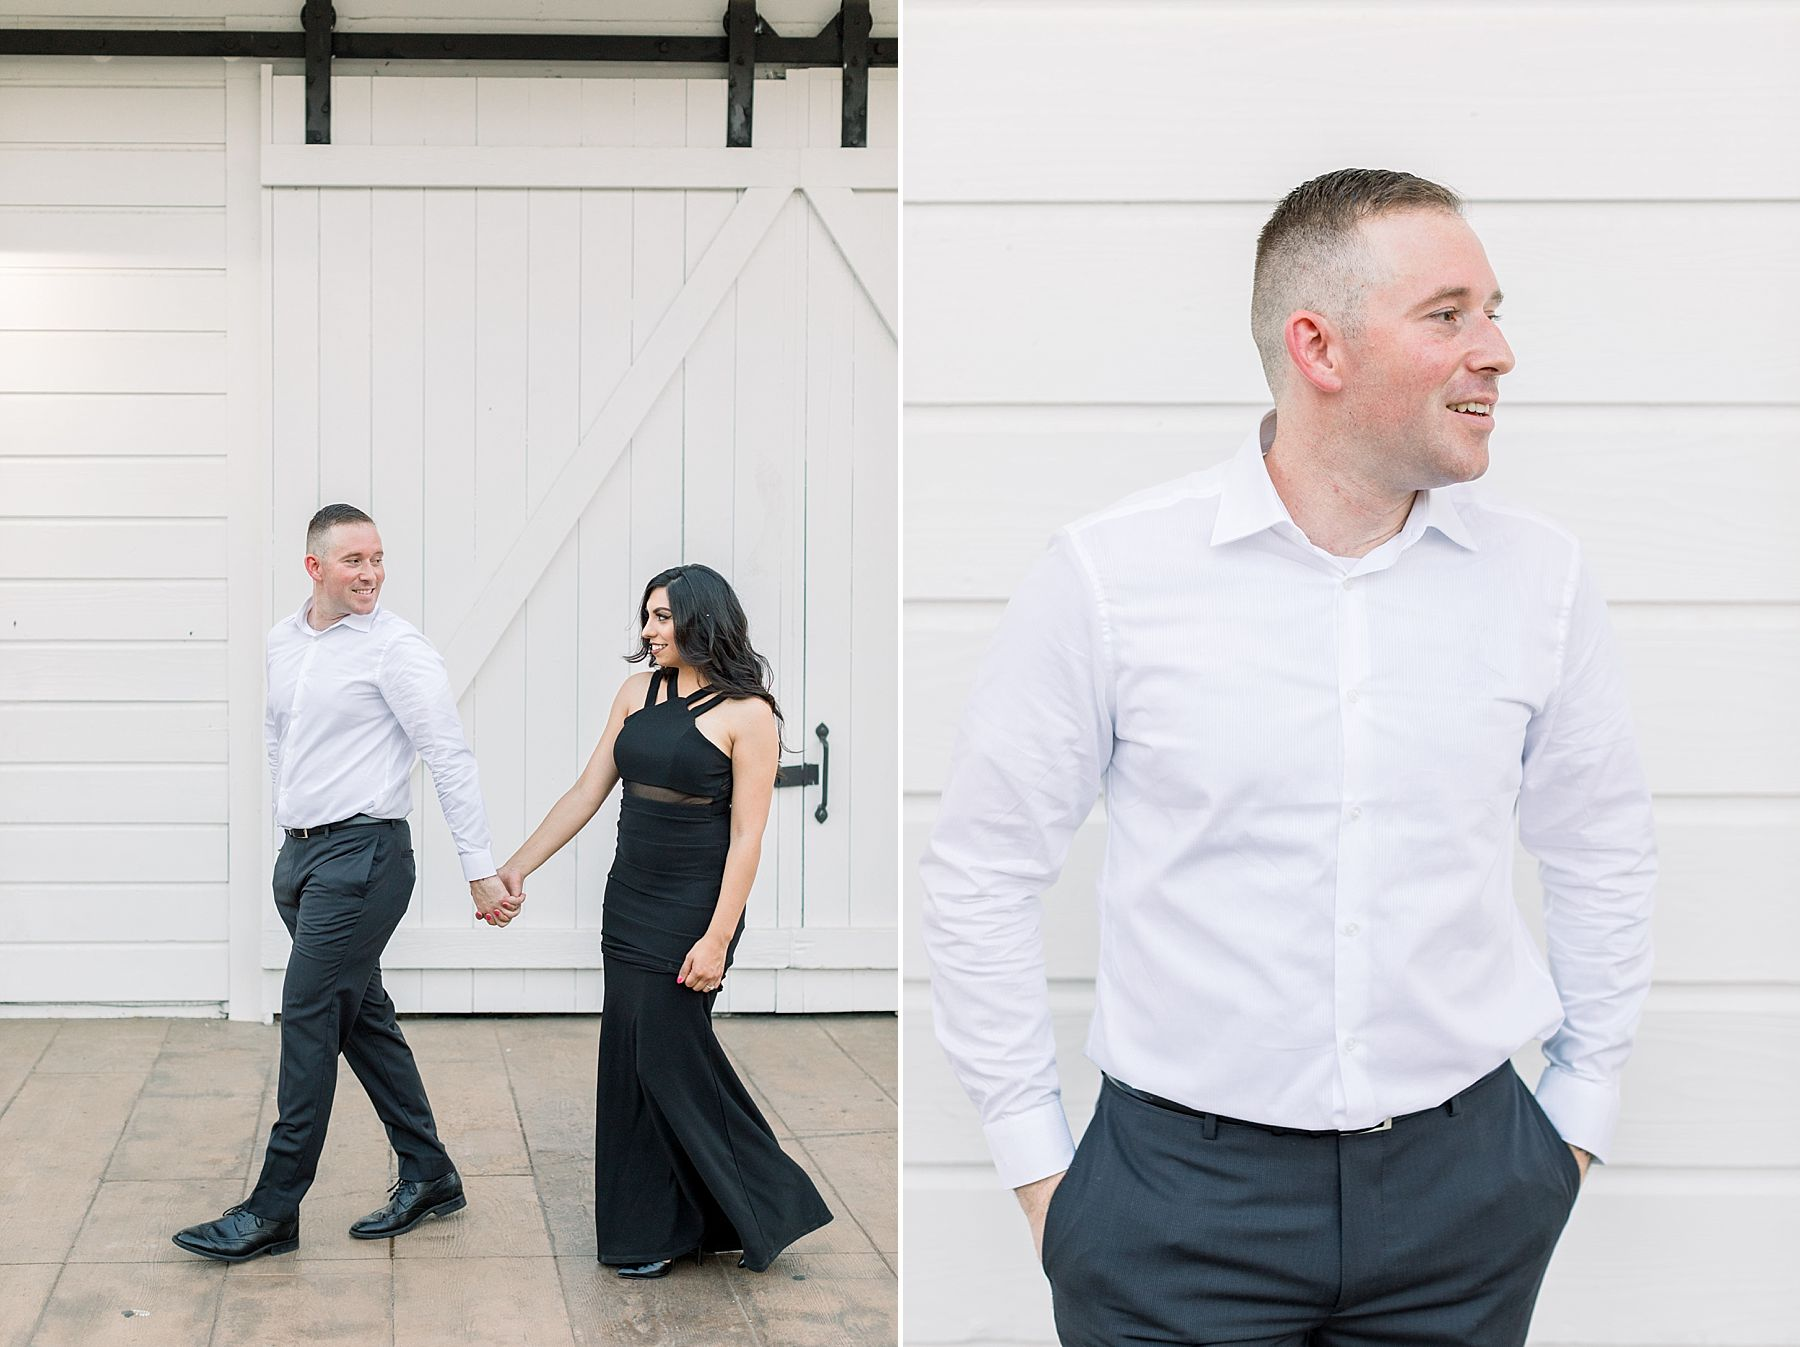 Old Sacramento Engagement Session - Downtown Sacramento Engagement Session - Black Tie Engagement Photos - Ashley Baumgartner - Sacramento Wedding Photographer_0014.jpg